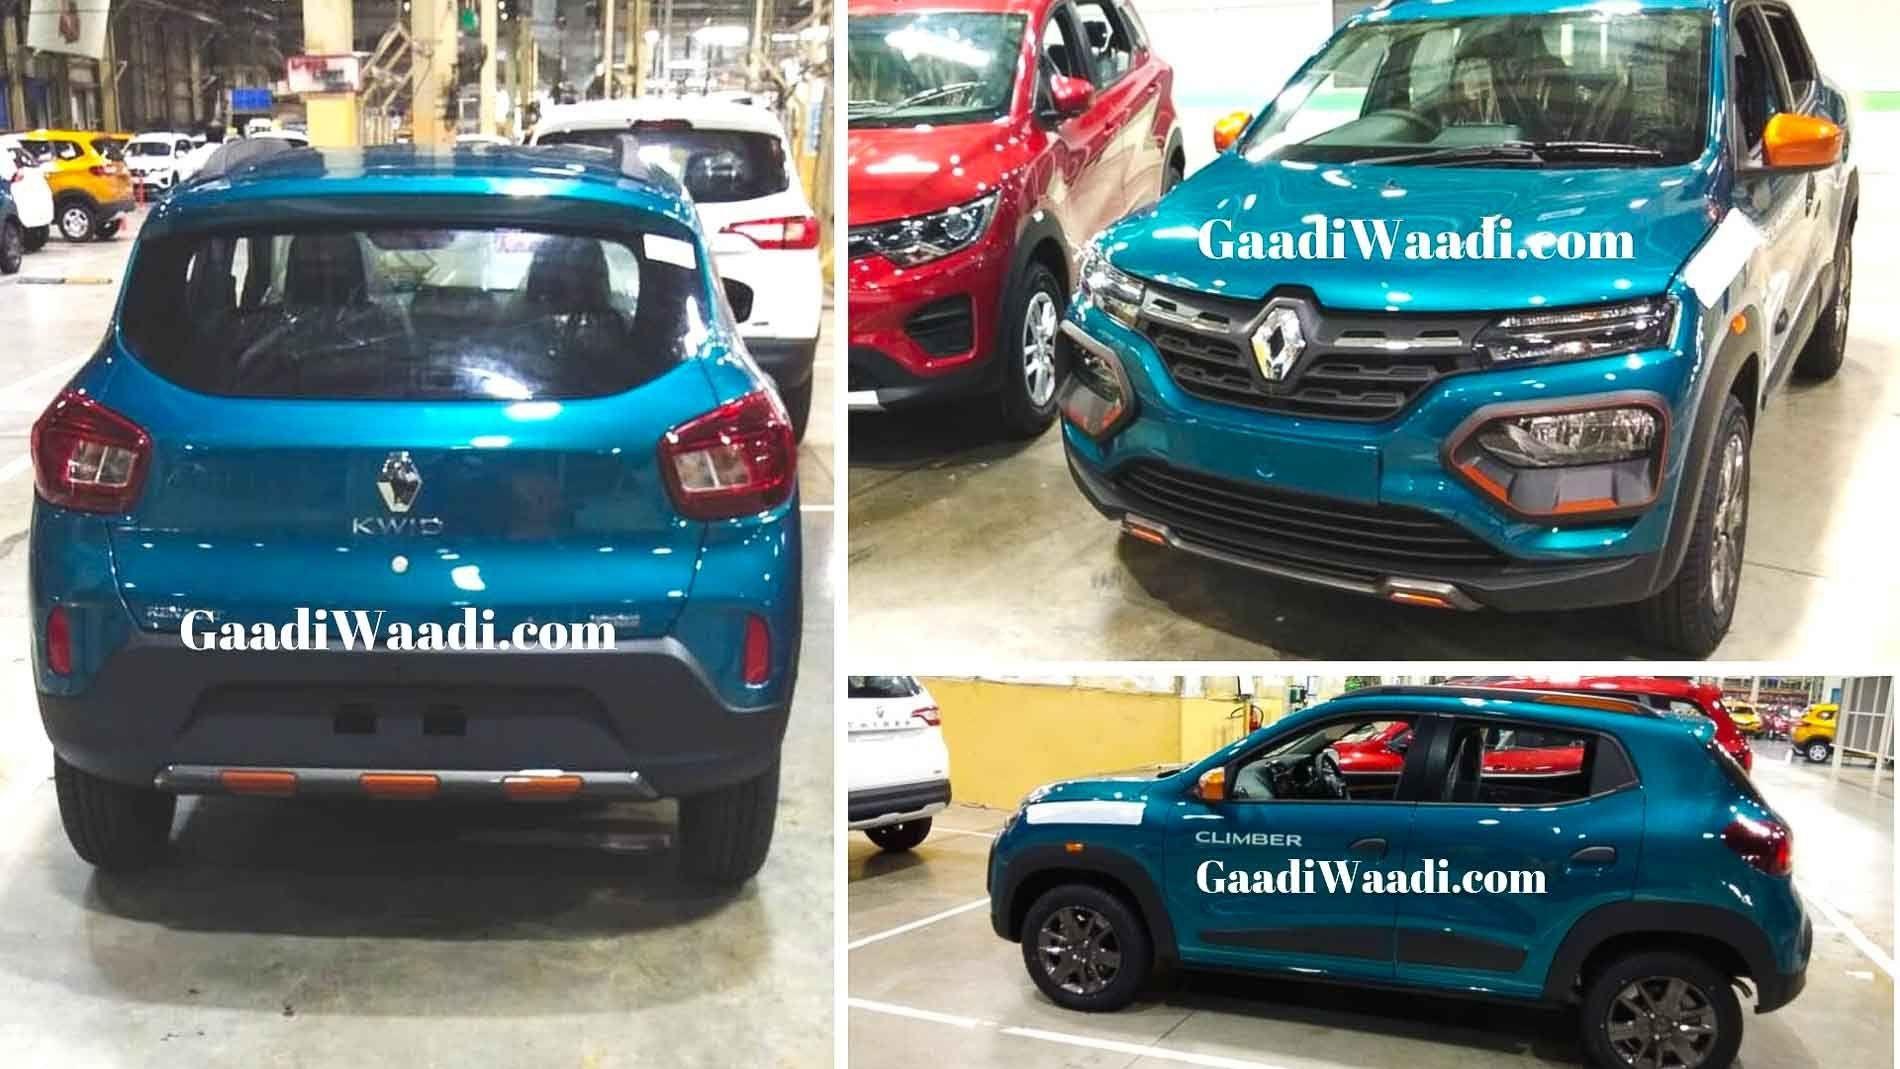 2020 Renault Kwid Photos